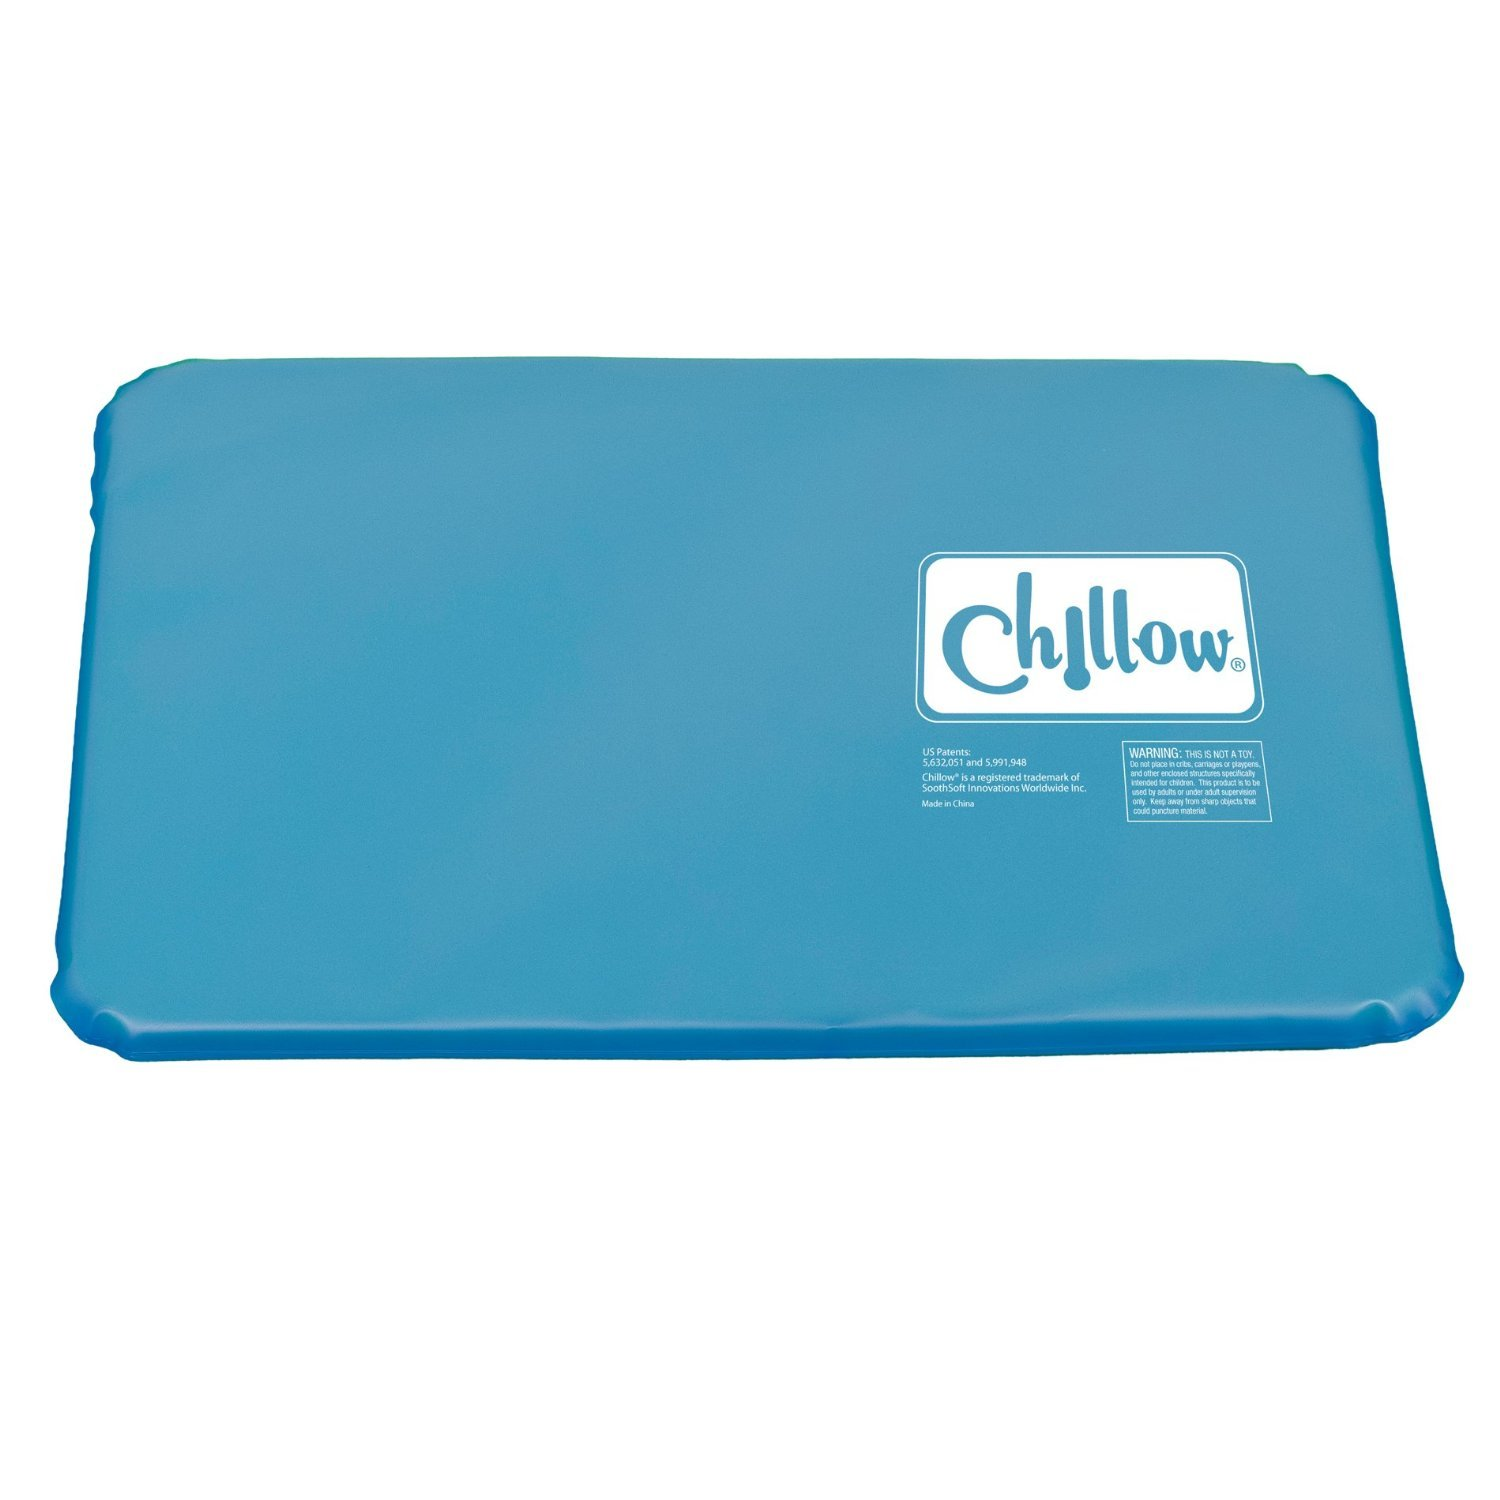 Chillow - Cooling Pillow for a Relaxing, Restful Sleep